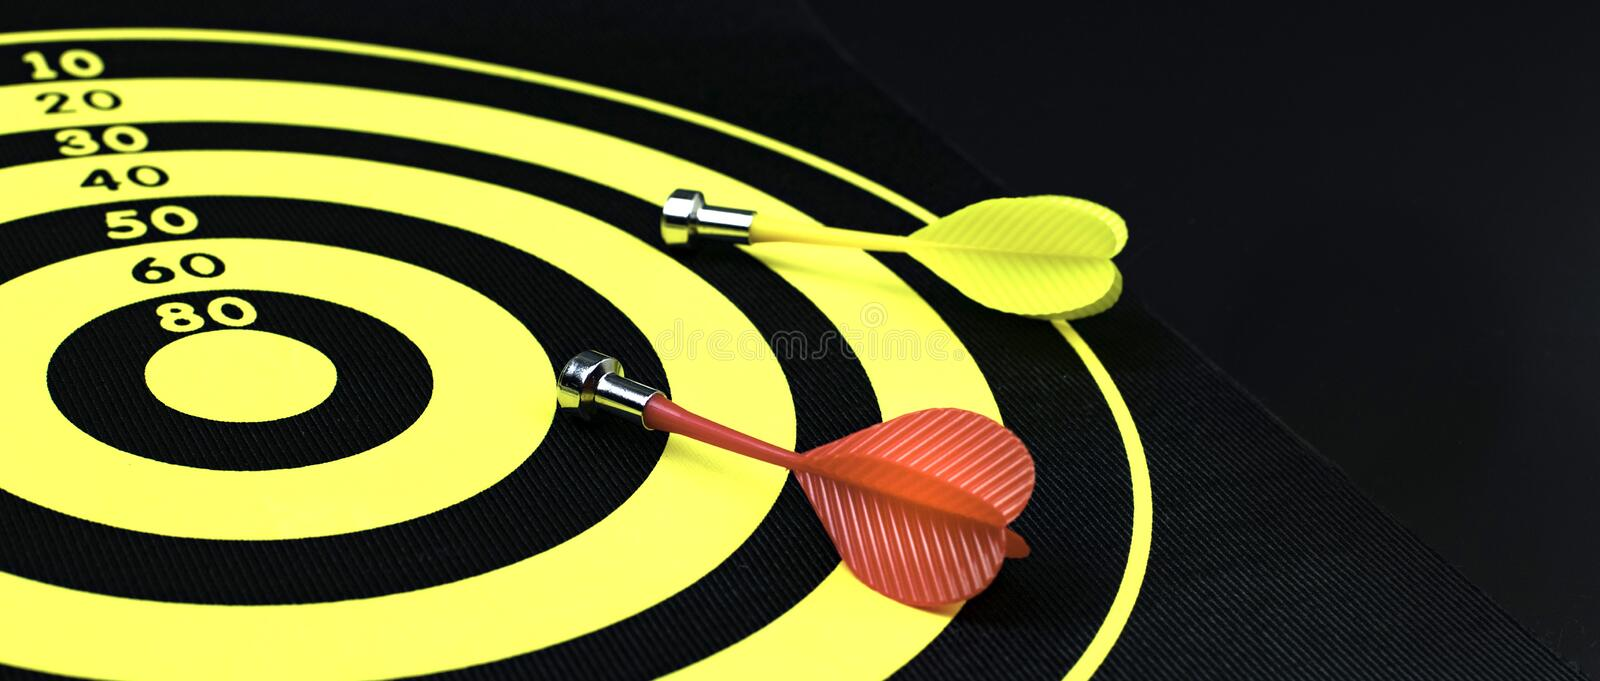 Darts board with two magnet arrows . royalty free stock images